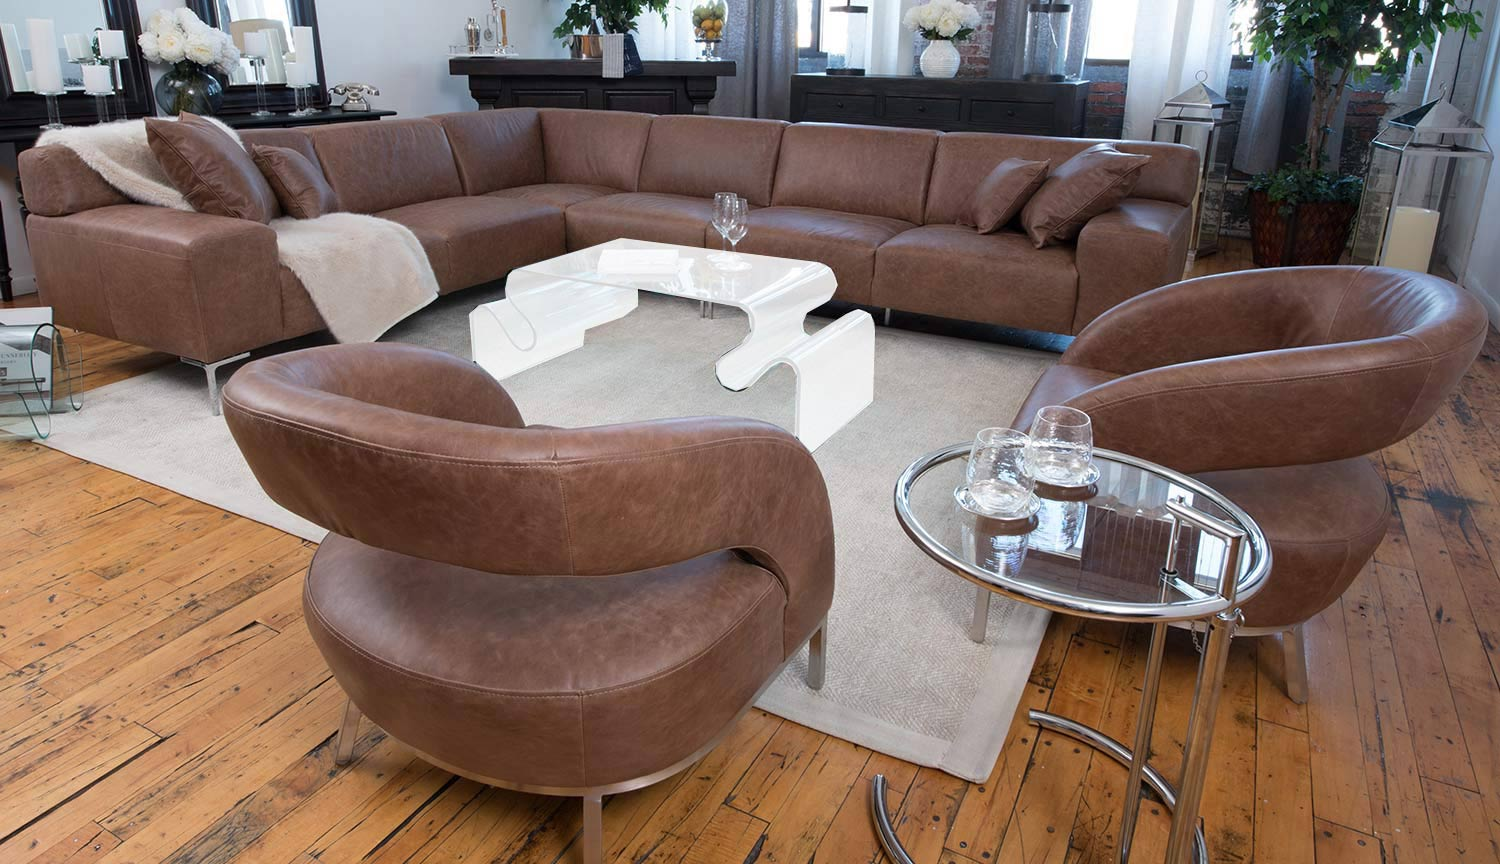 elements fine home furnishings industrial 3piece sectional sofa with 2 mod deco chairs chestnut - 3 Piece Sectional Sofa